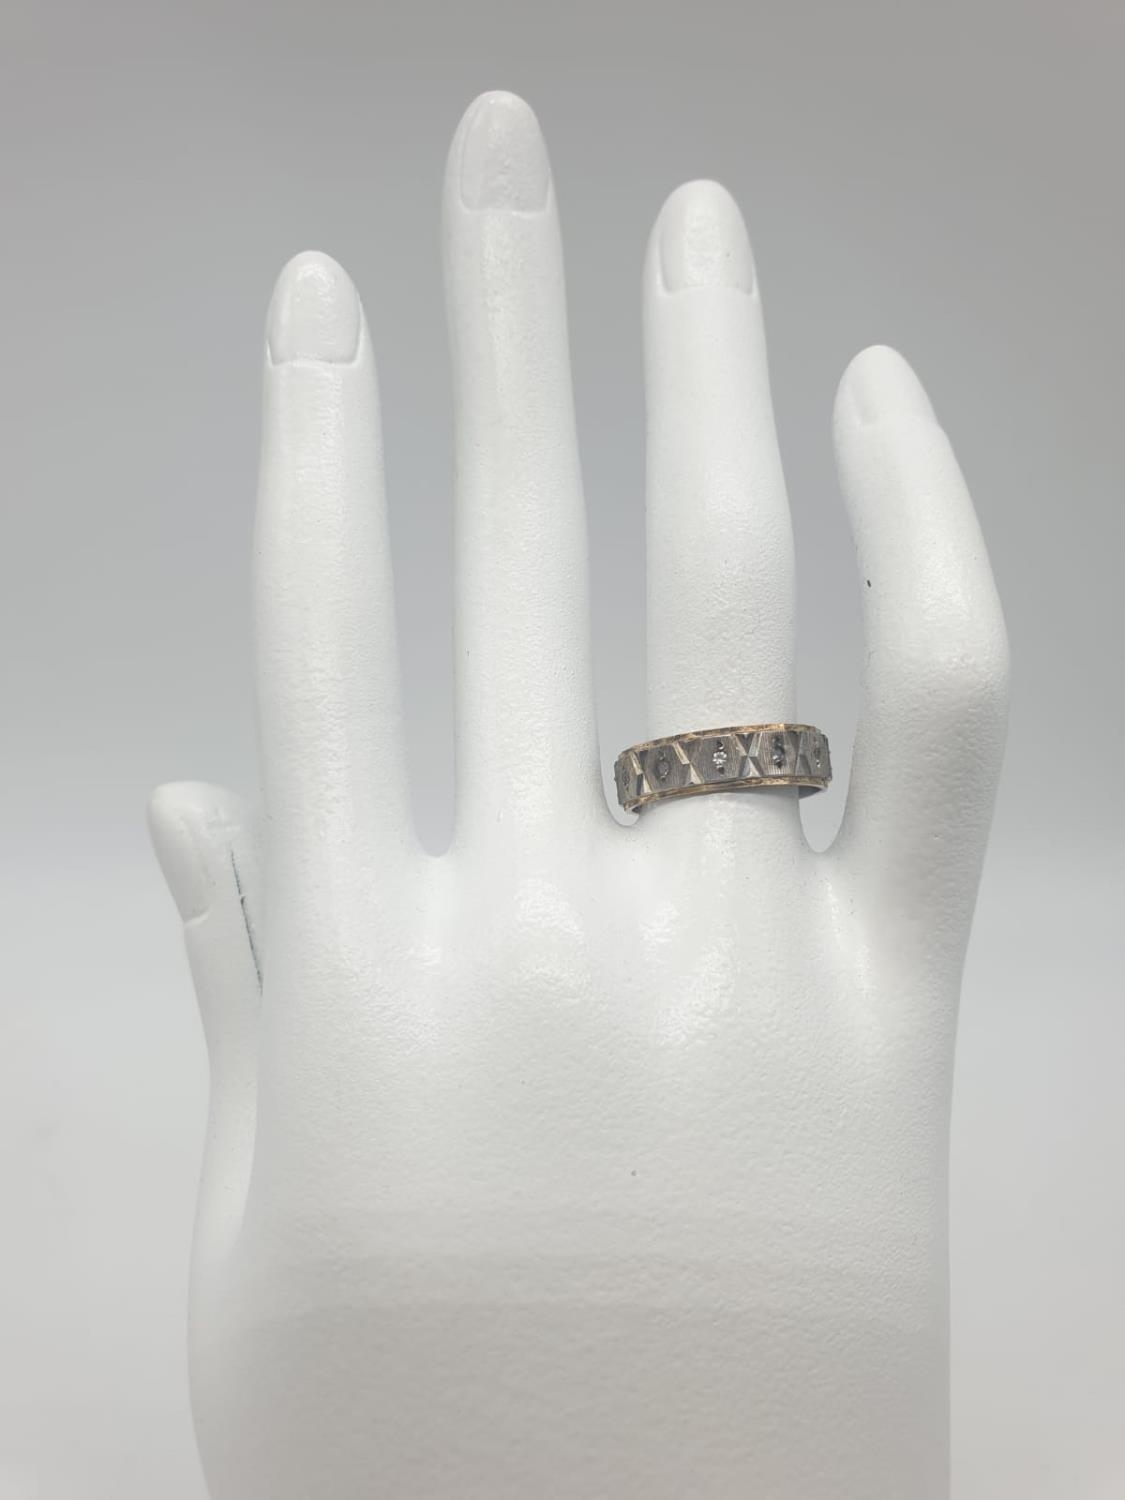 Gold and silver eternity ring, 3.2g weight and size O - Image 4 of 4